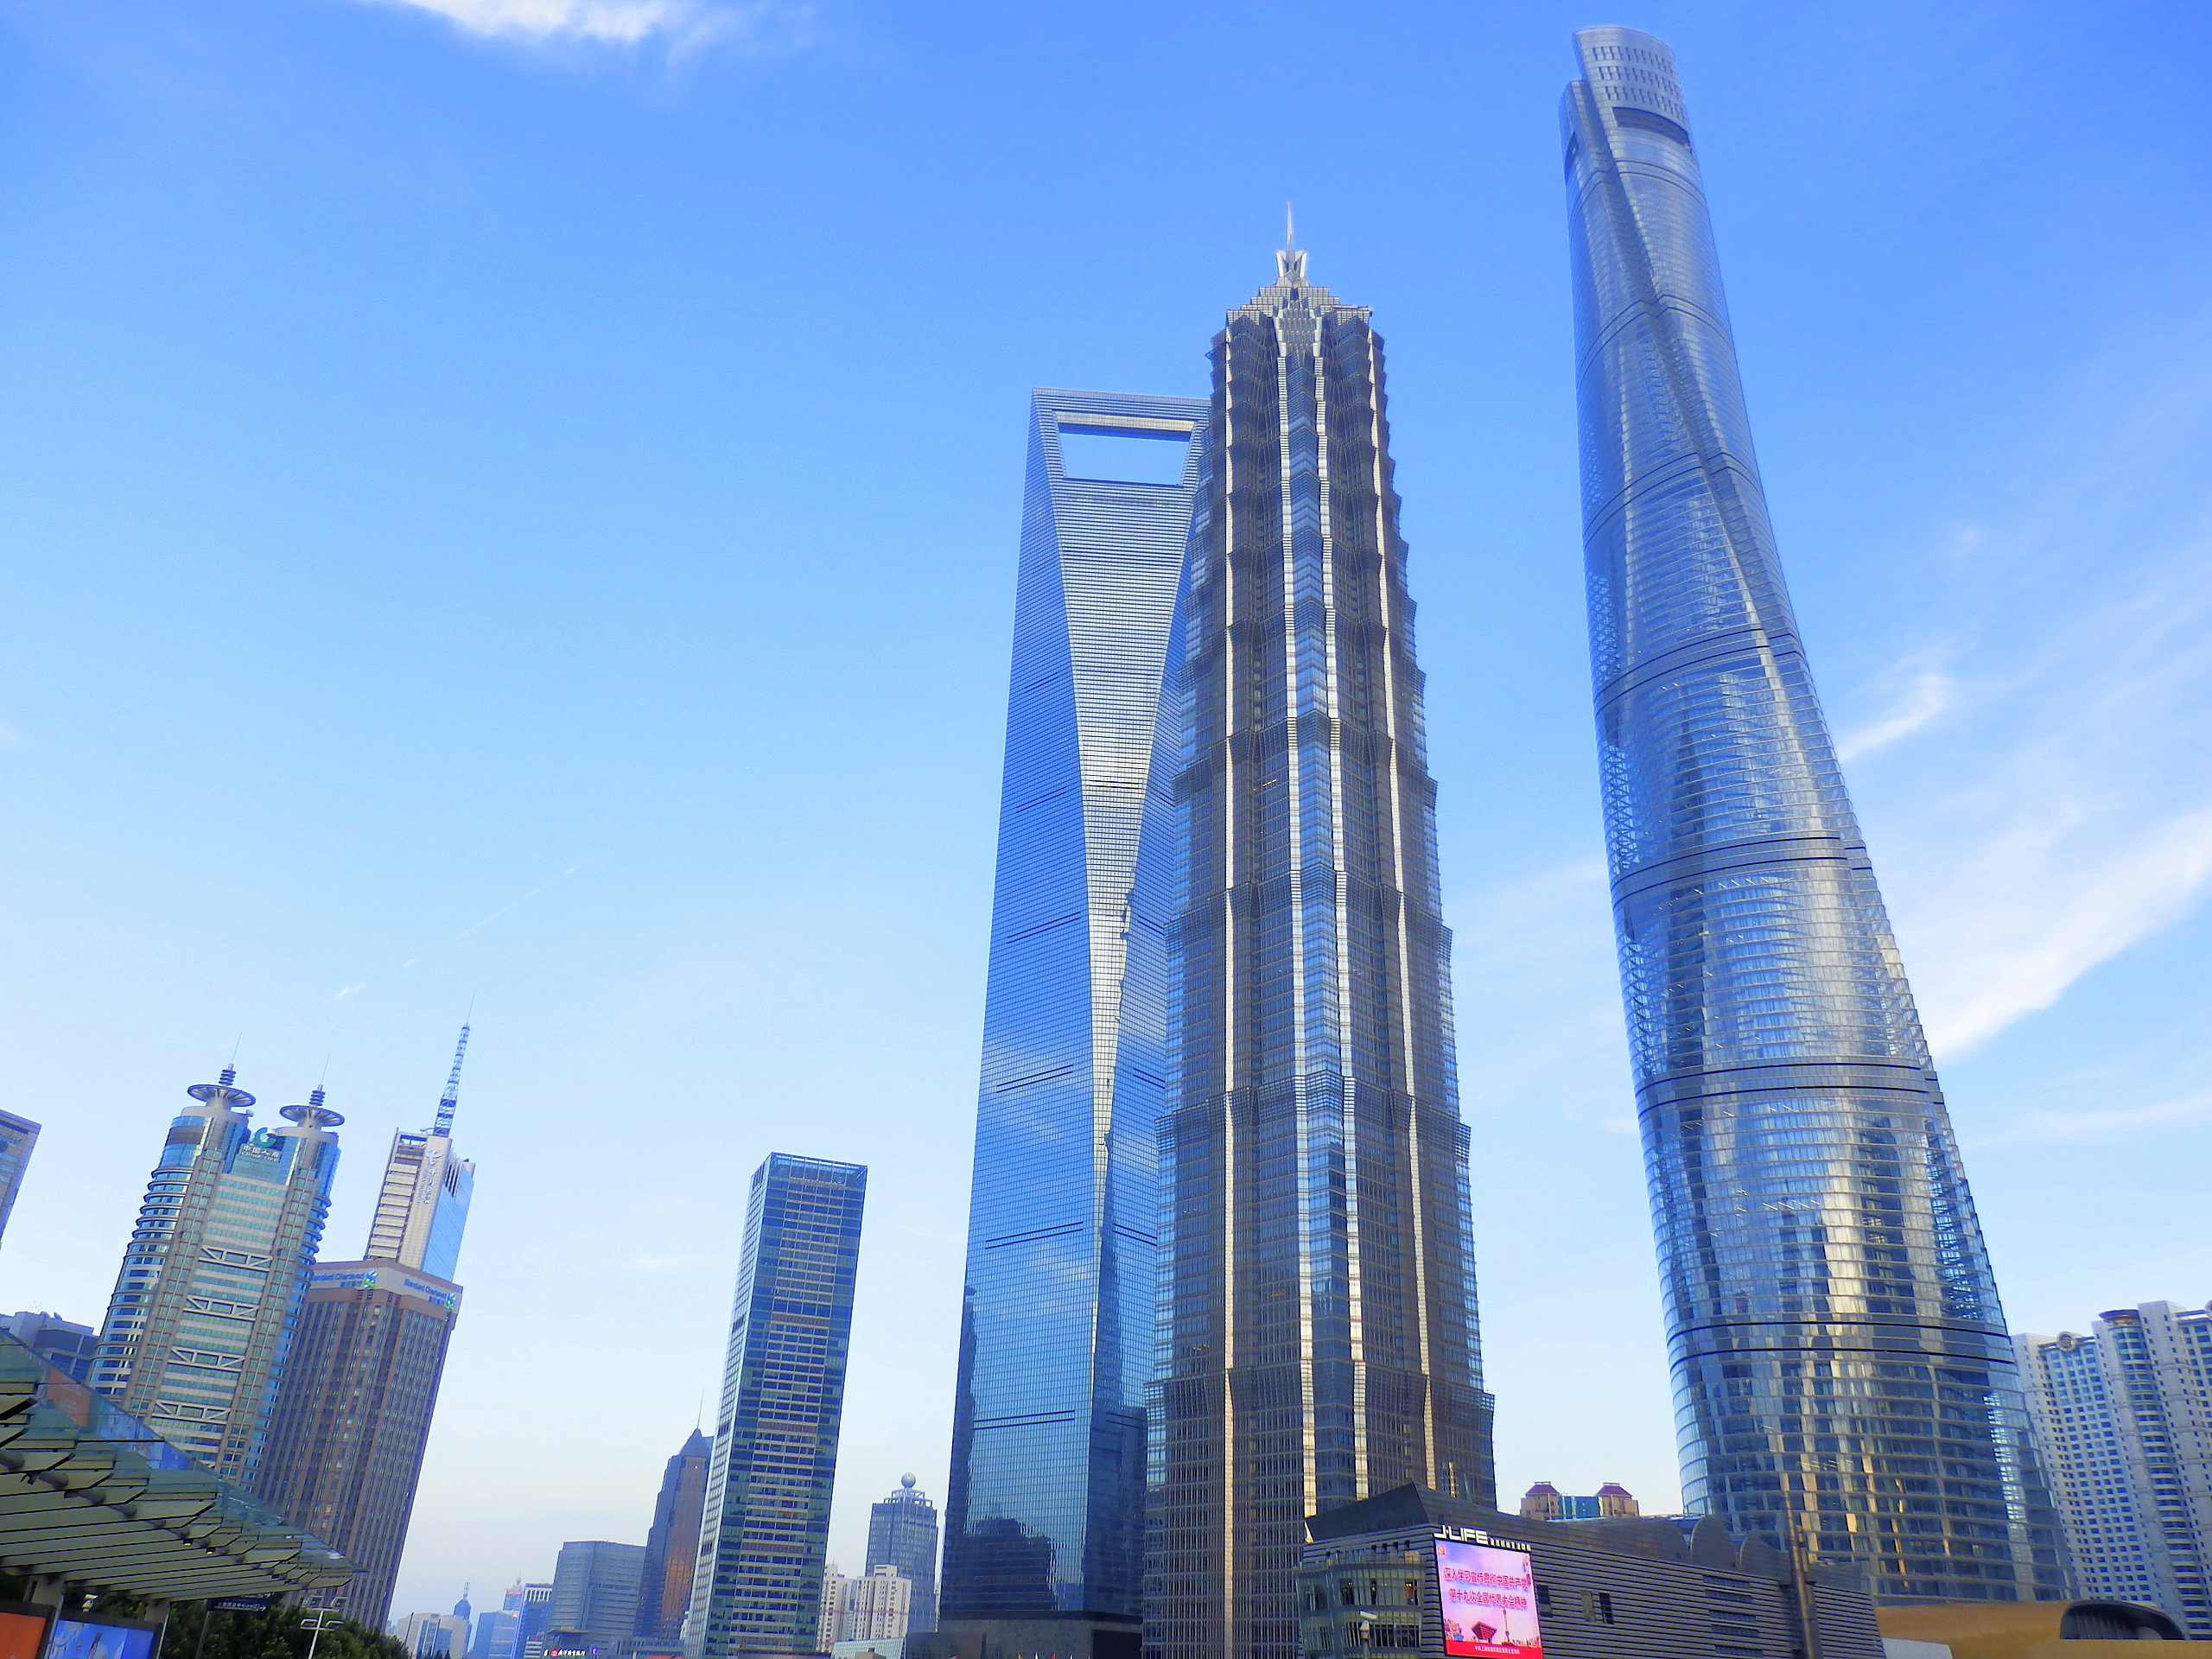 World Financial Center, Jin Mao Tower, Shanghai Tower, Pudong